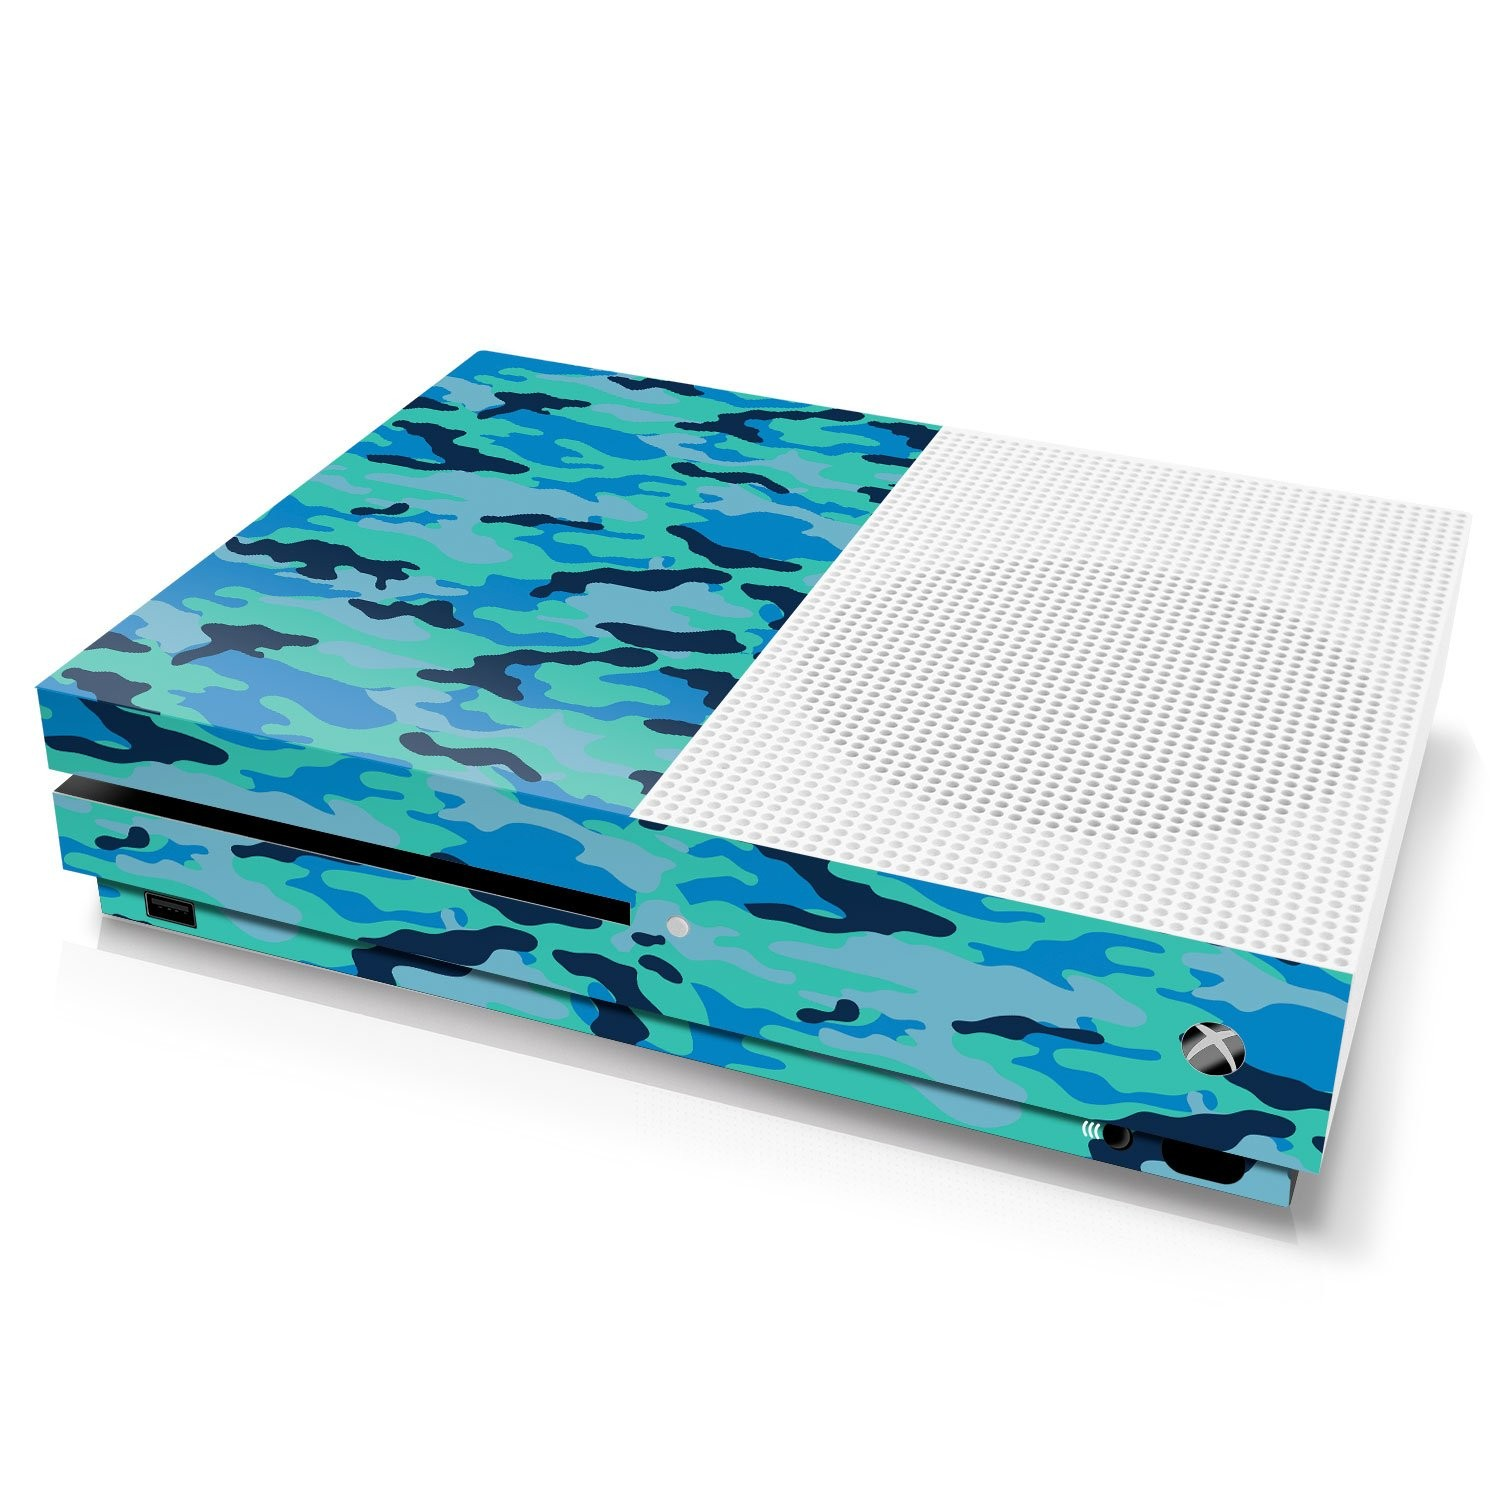 Xbox One S Console Skin - Camouflage: Seal - Officially Licensed by Xbox